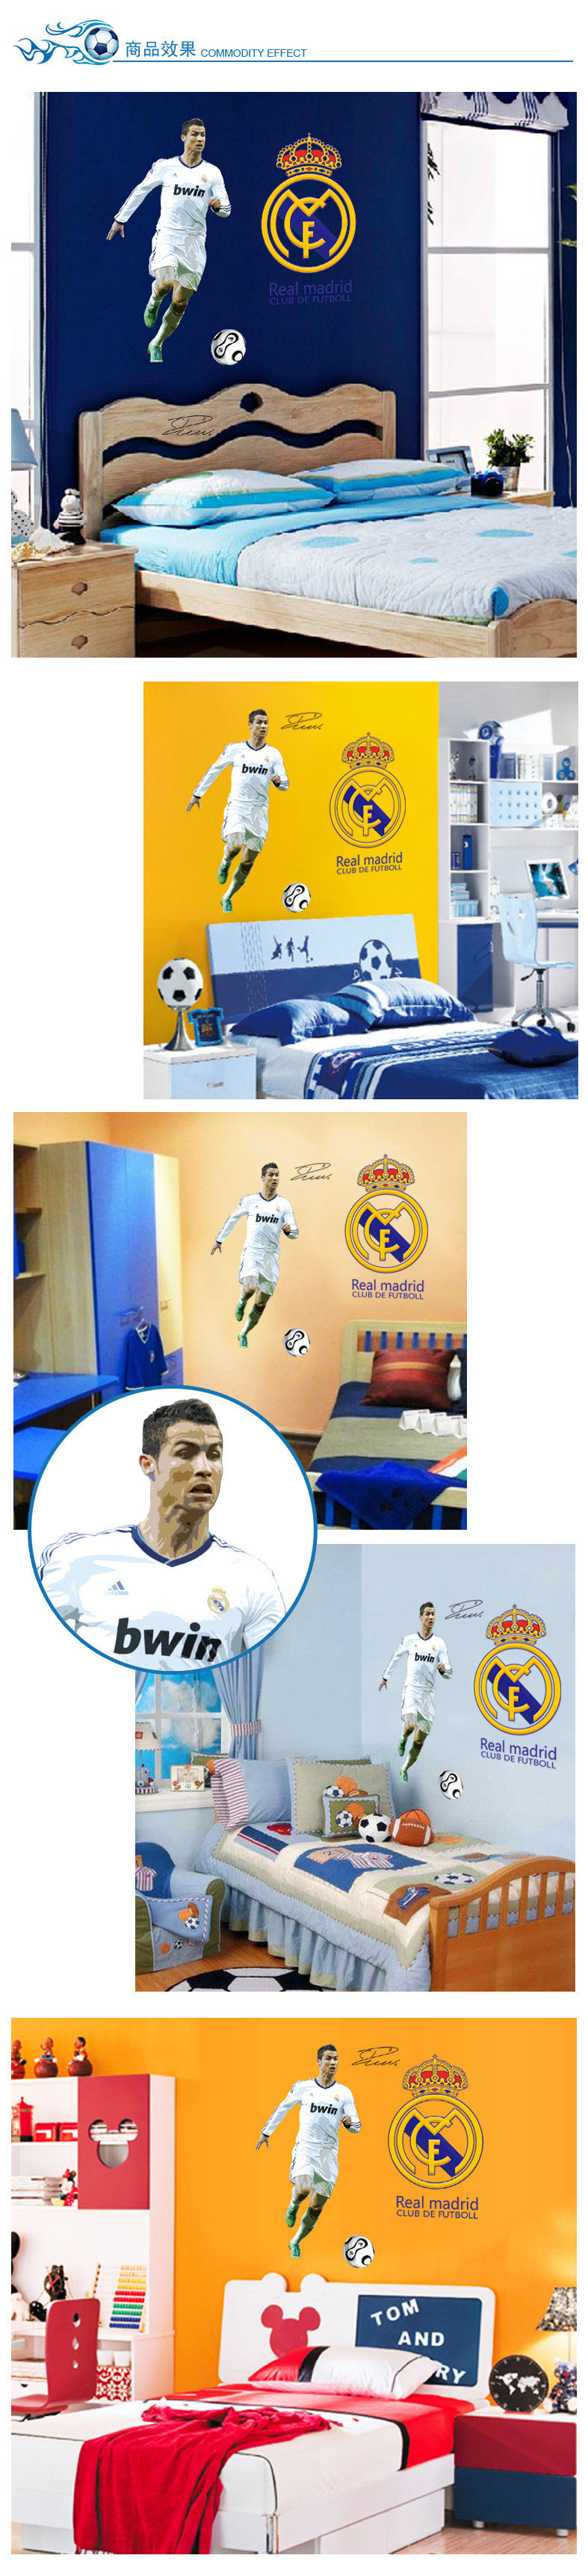 grand sticker geant mural 110x90 christiano ronaldo cr7 real madrid deco poster ebay. Black Bedroom Furniture Sets. Home Design Ideas